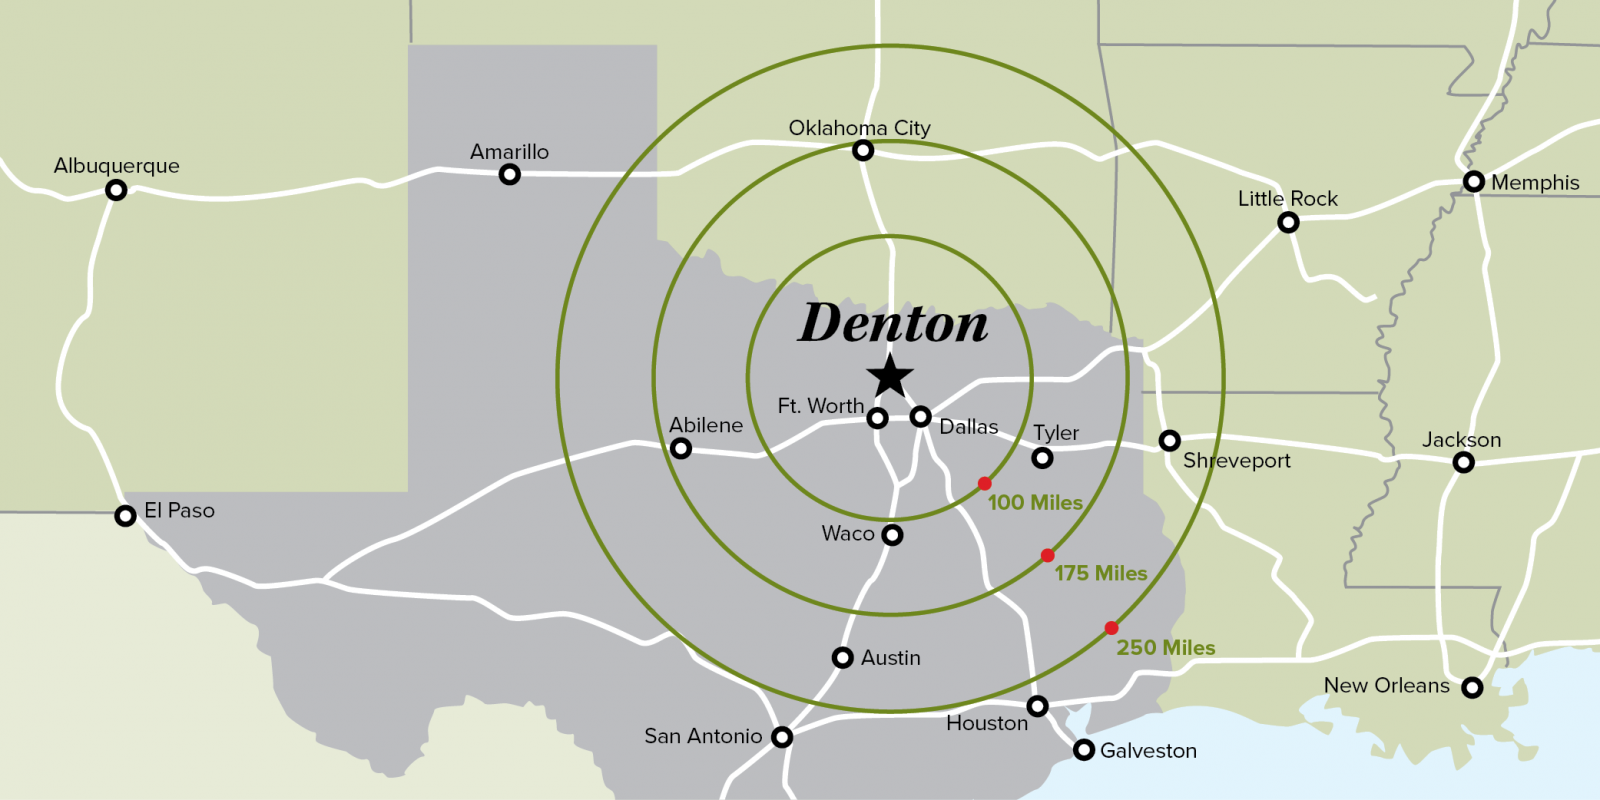 Denton Texas Map Denton on the Map | Denton Economic Development Partnership